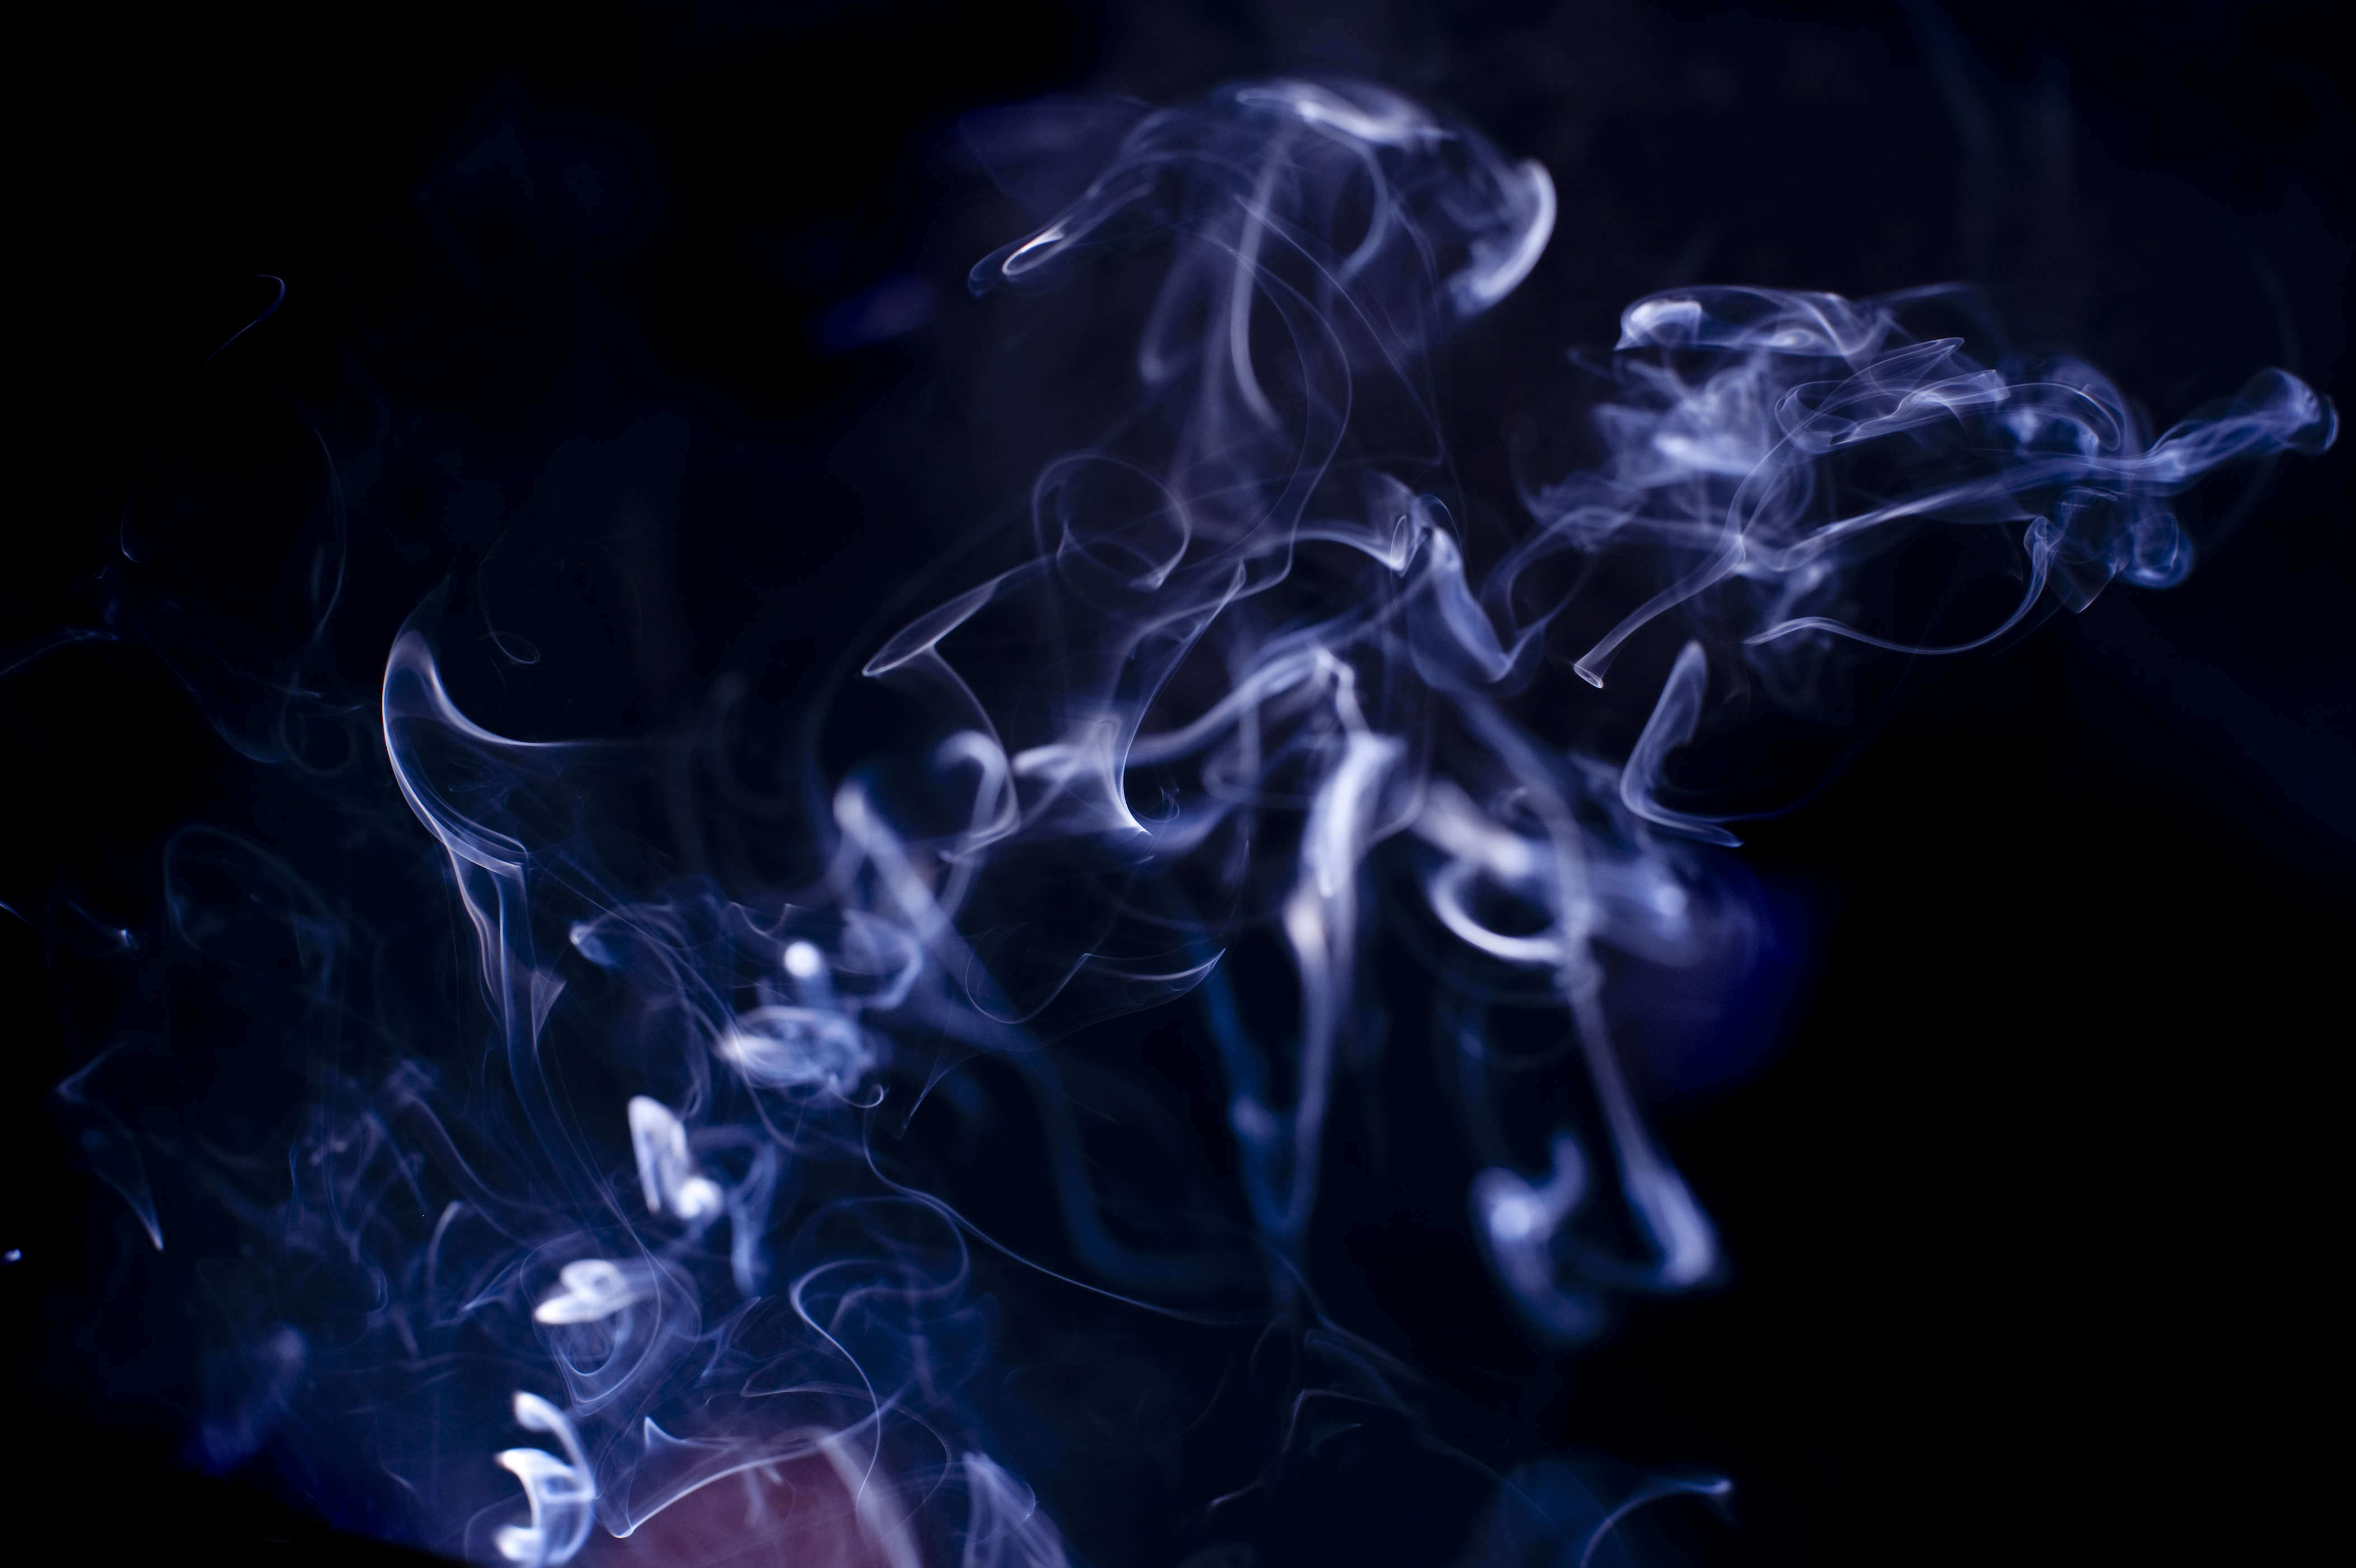 ethereal smoke free backgrounds and textures cr103 com